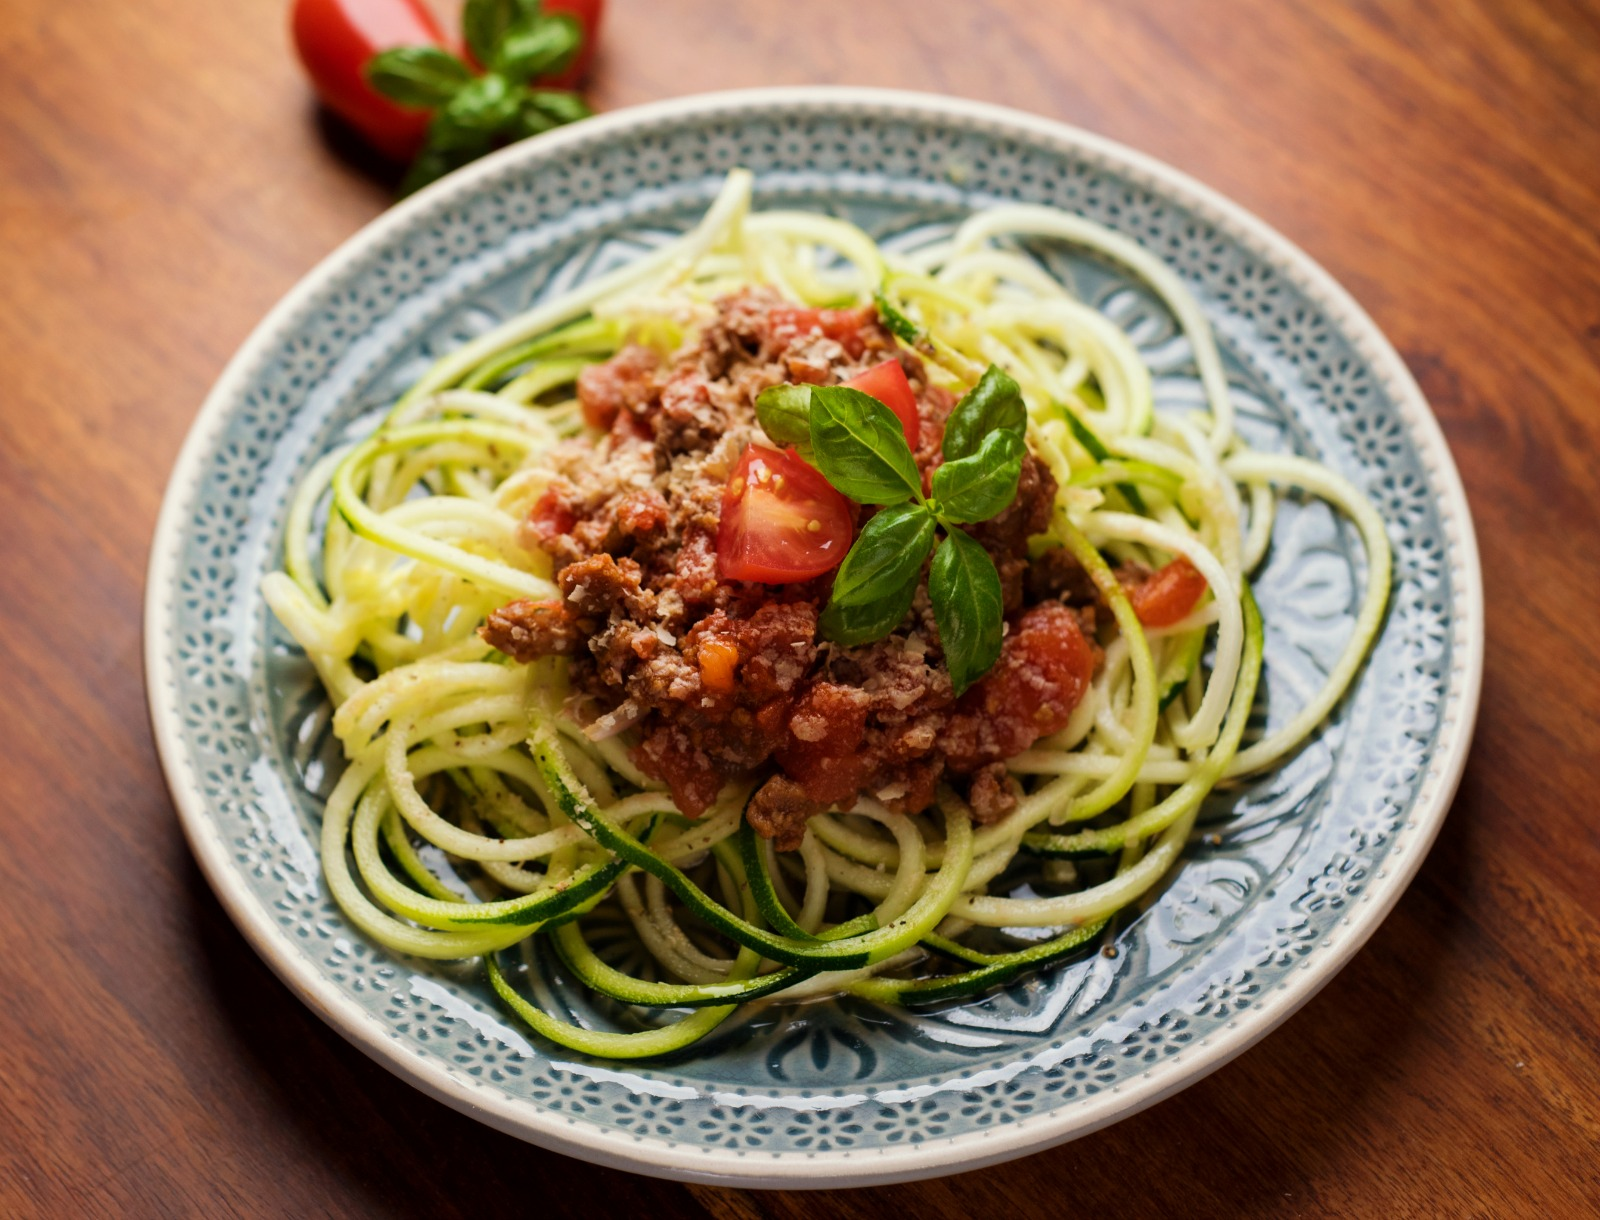 This vegan bolognese sauce captures the robust meaty flavor of the classic preparation with healthy mushrooms, eggplant and an aromatic sofrito. There is also one secret umami ingredient that adds yet another level of depth and flavor. (#vegan) ordinaryvegan.net